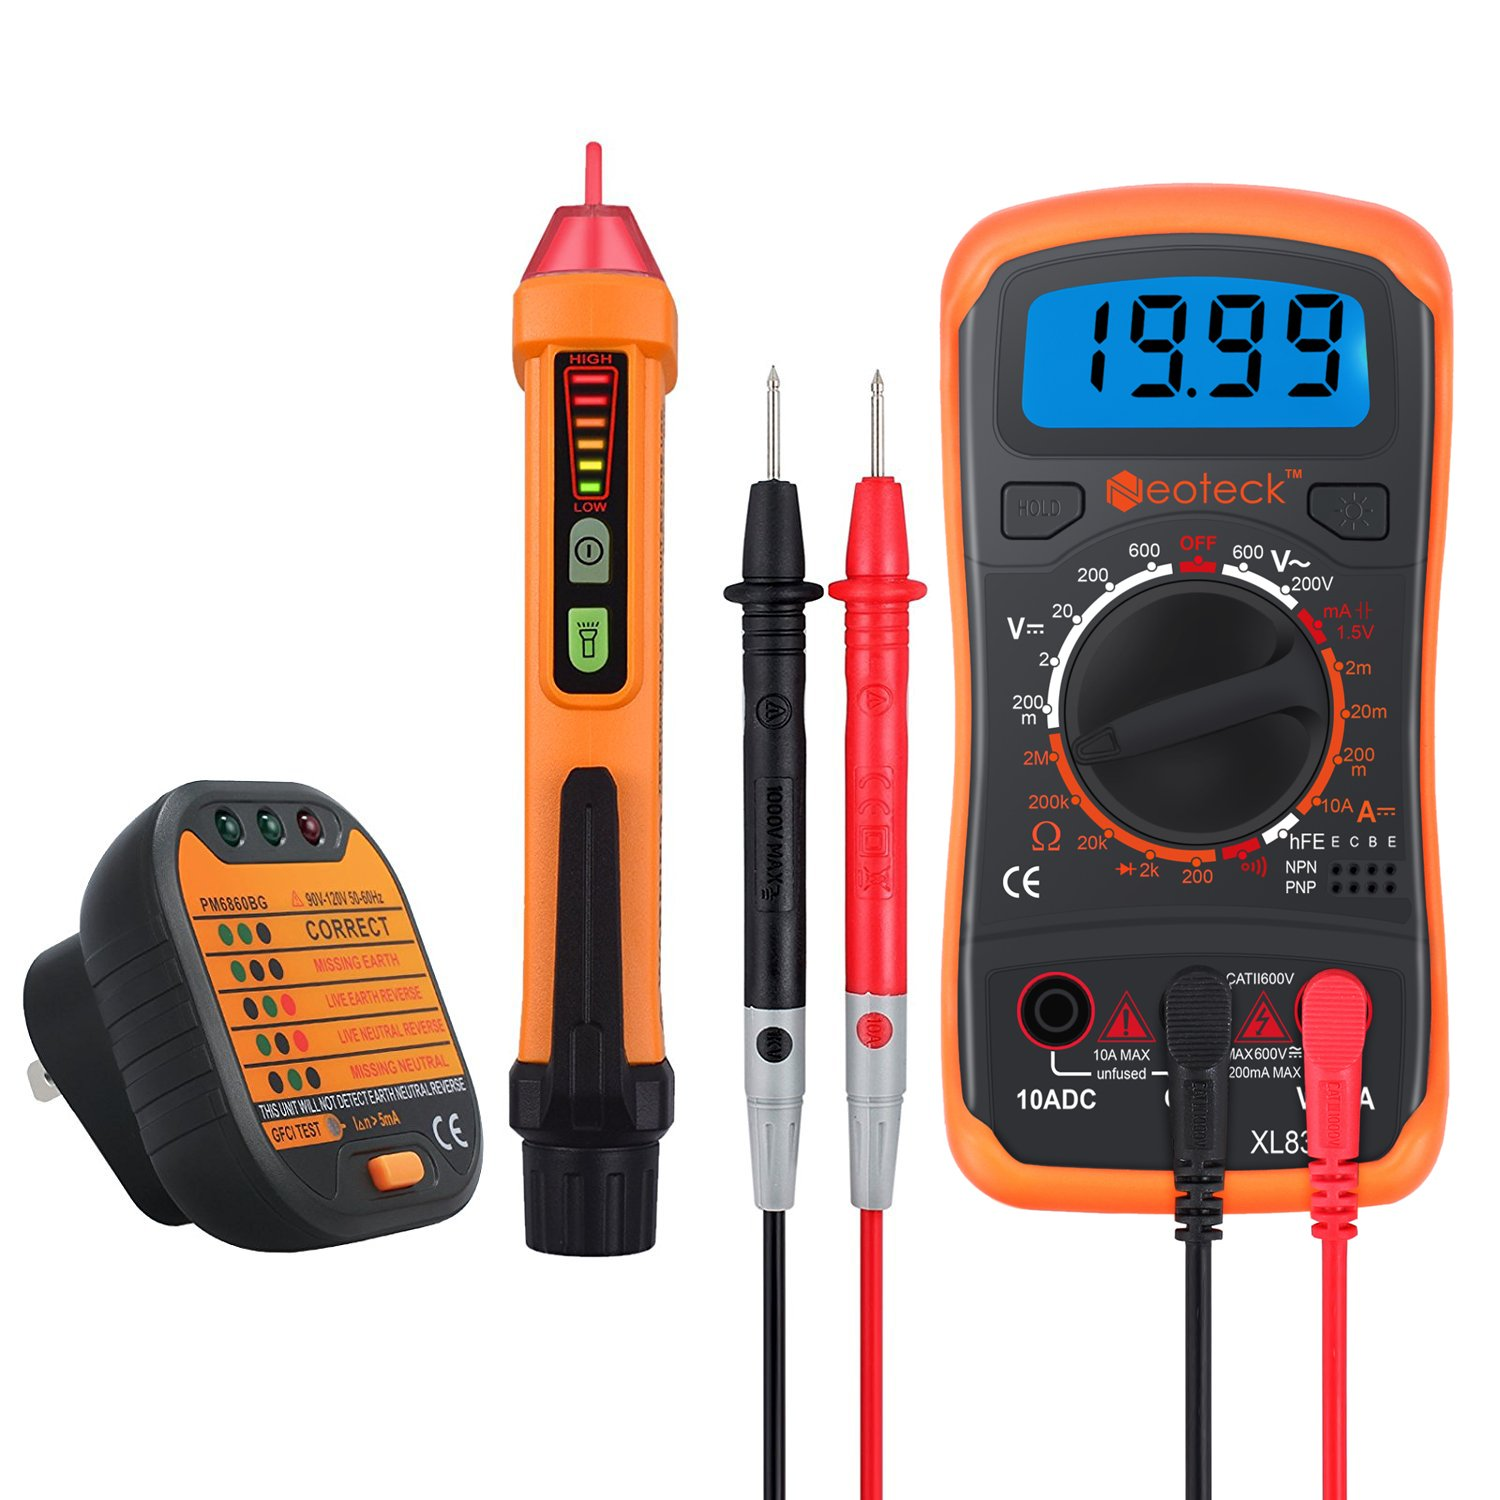 Cheap Test Voltage Multimeter Find Deals On Noncontact Ac 600v Detector Electrical Circuit Wire Tester Get Quotations Neoteck Kit Includes Mini 1999 Count Digital Non Contact 12 1000v